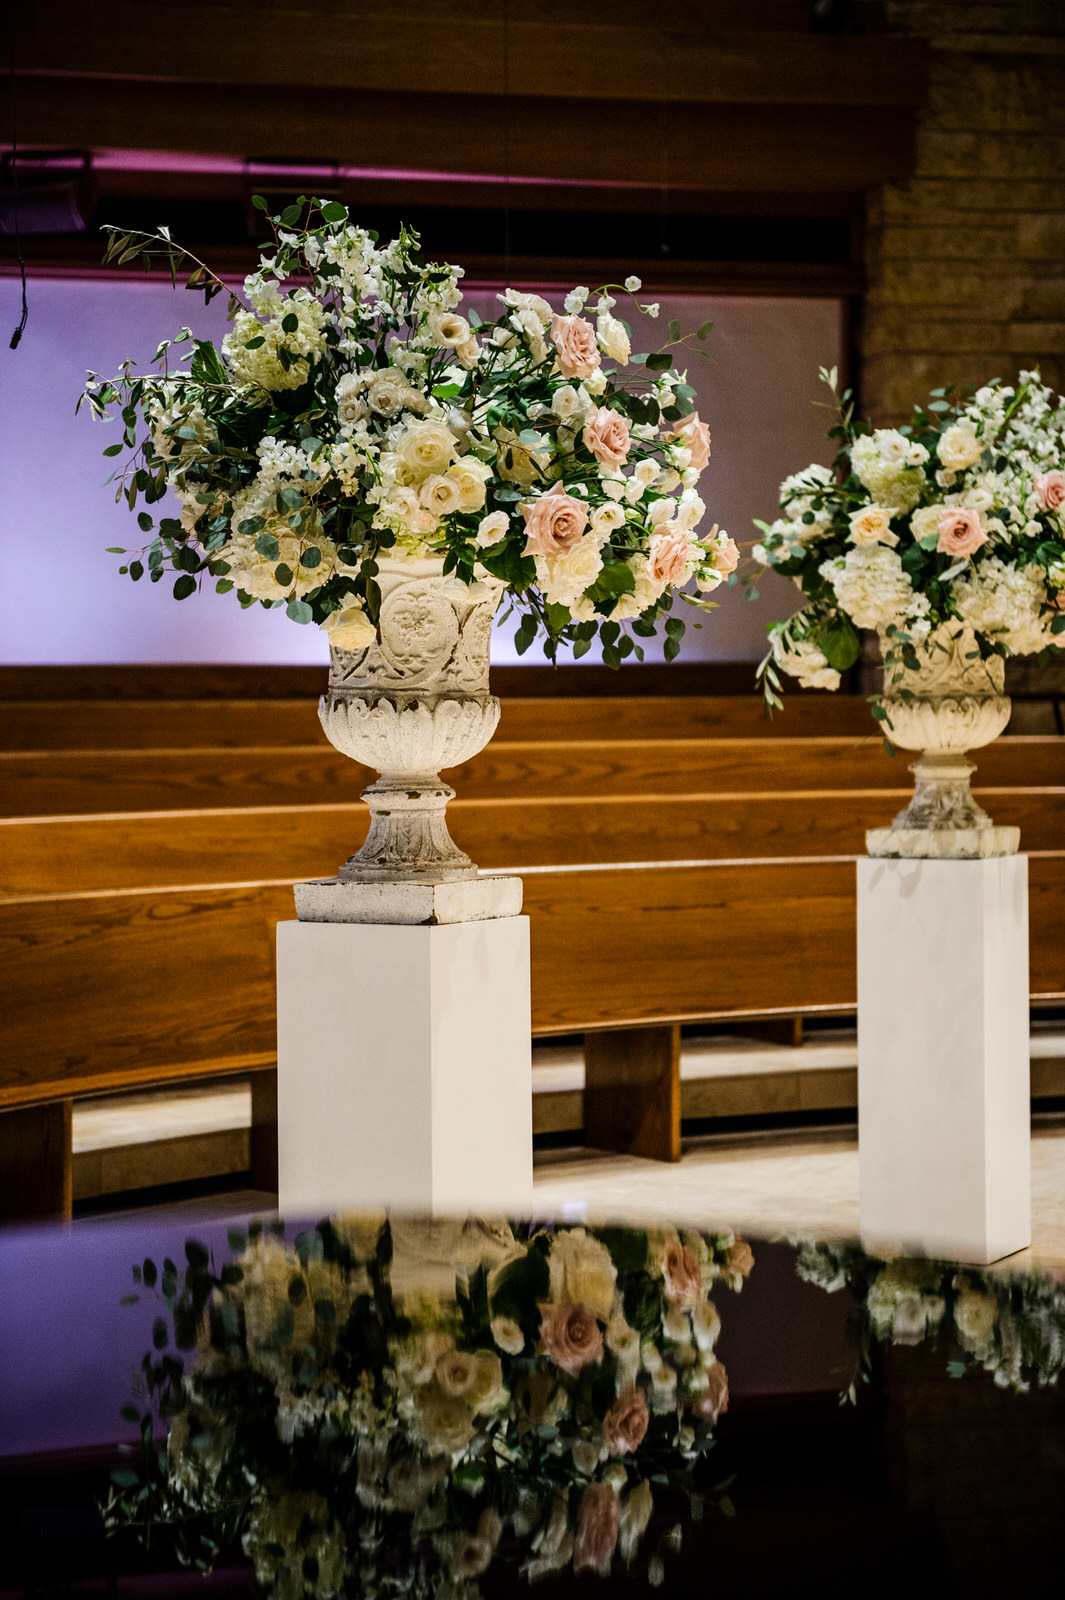 Altar arrangements, blush, white, garden style urn. White pedestals. Wedding ceremony in  Memorial Drive Presbyterian , Houston, Texas. Maxit Flower Design,  Alyssa Meeks  ,  Chris Bailey Photography